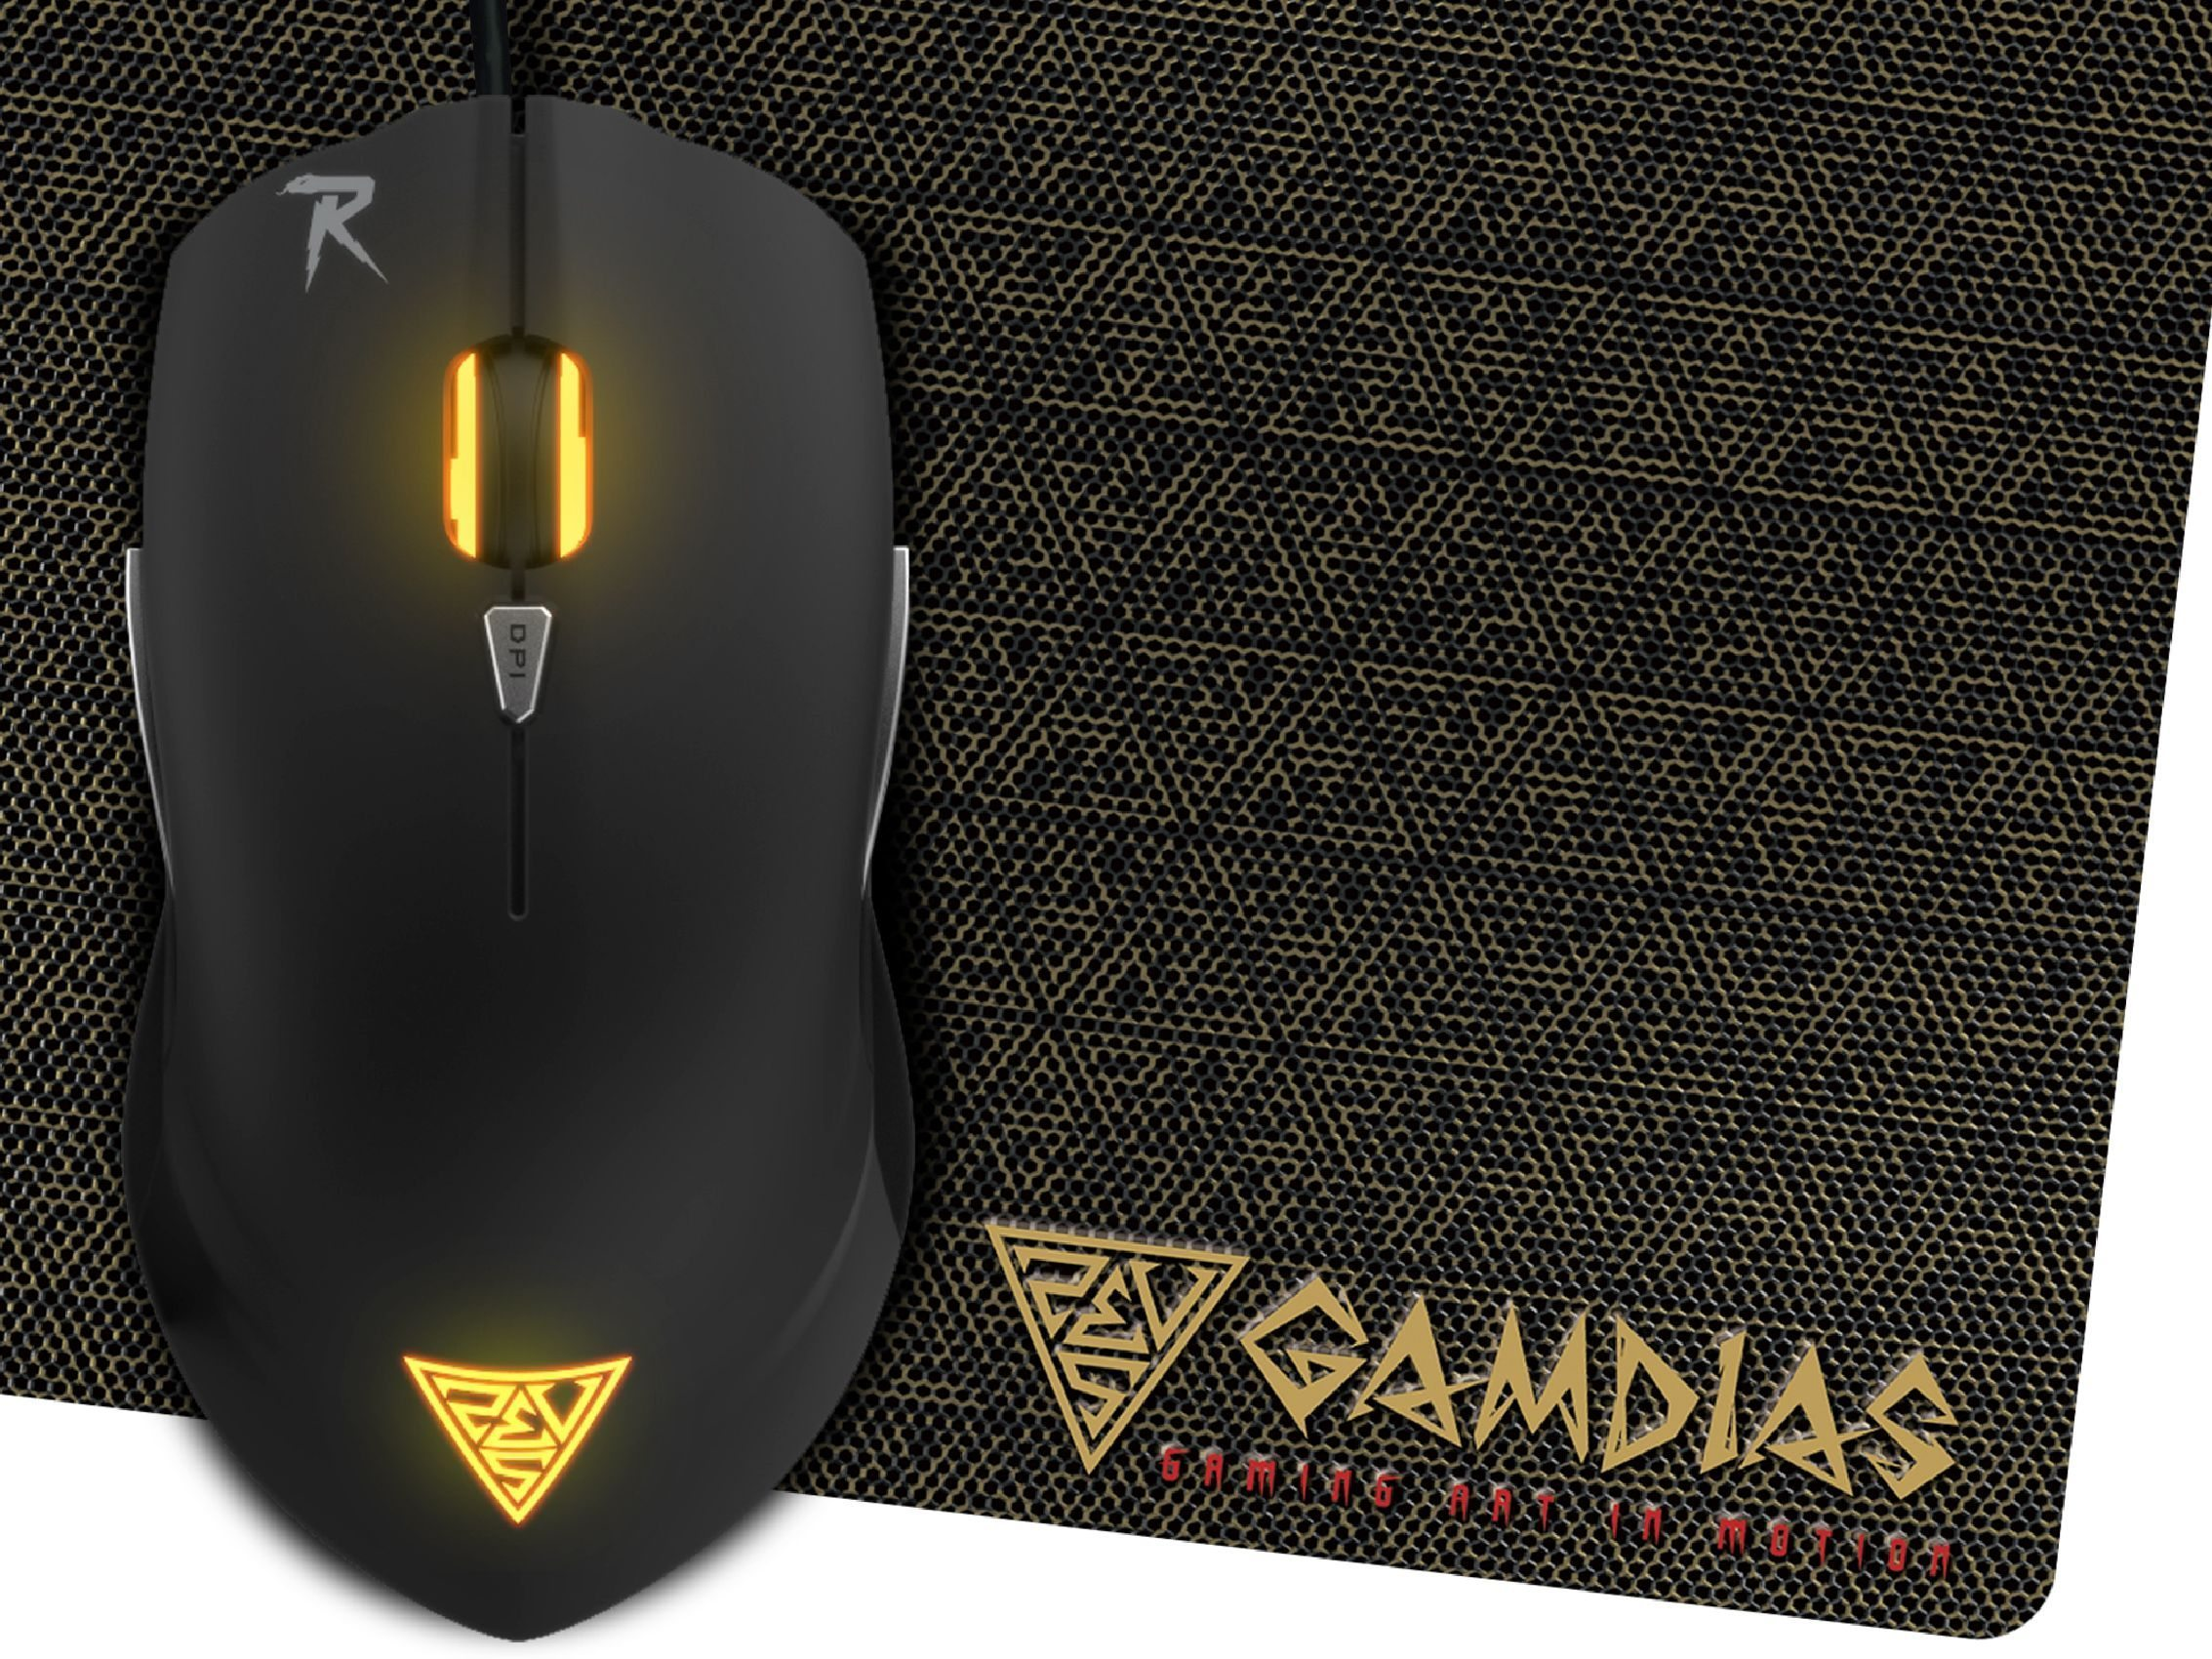 Gaming Mouse - OUREA E1 + PAD NYX E1 - 4000dpi, backlight, weight tunning